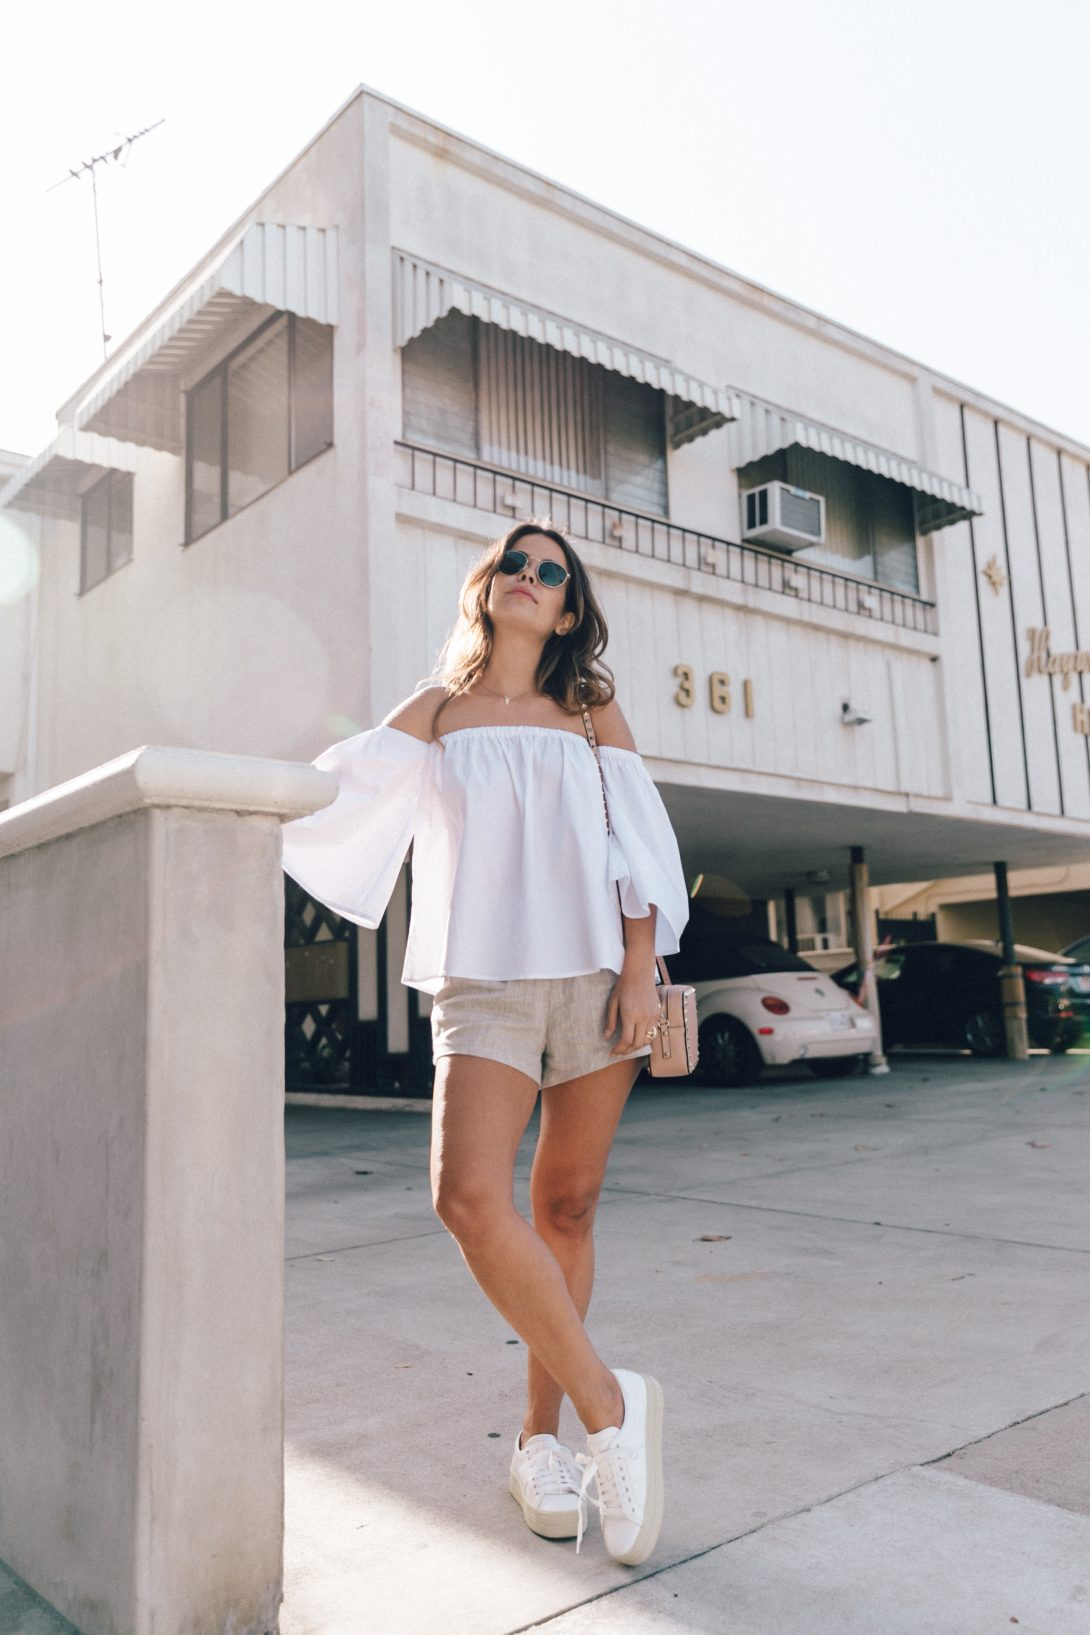 Off_The_Shoulders-Chicwish-Valentino_Bag-Monnier_Fevres-Sneakers-Saint_Laurent-Reformation_Shorts-Outfit-Los_Angeles--52